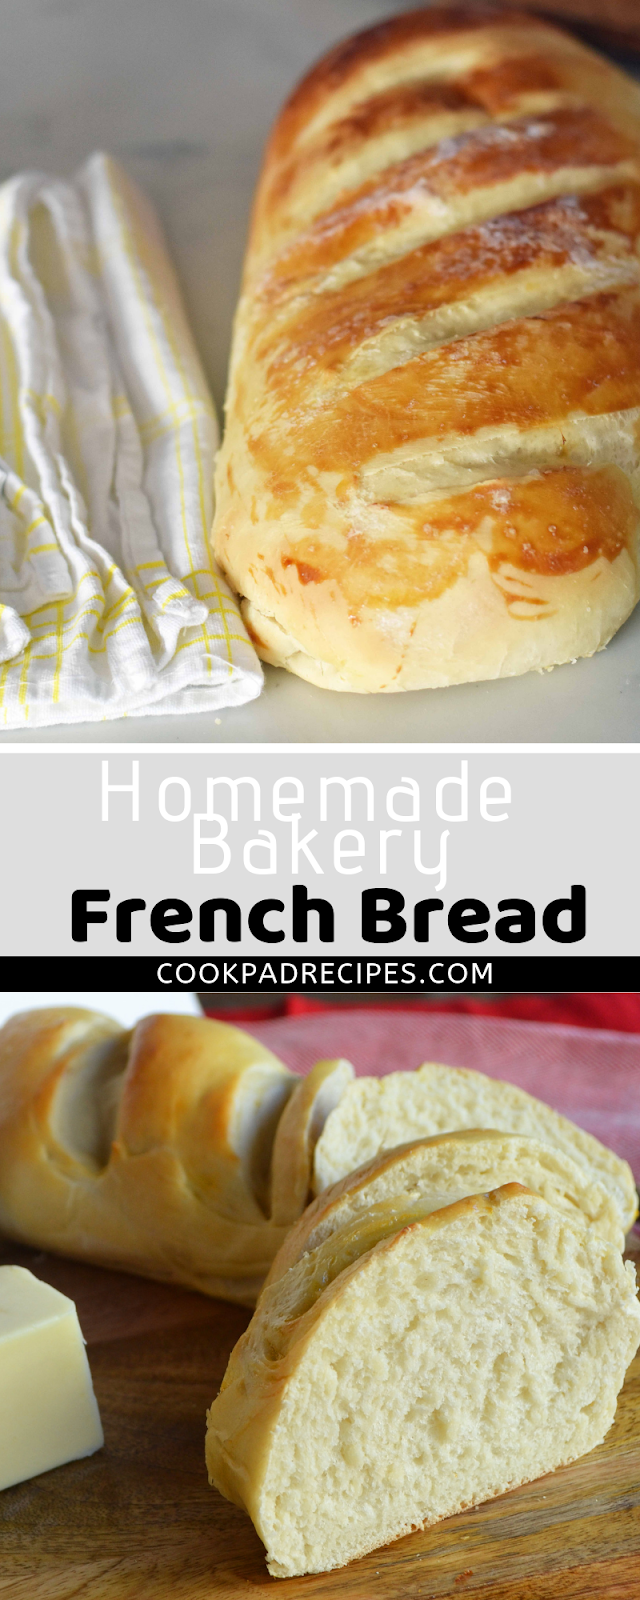 Hоmеmаdе Bаkеrу French Bread